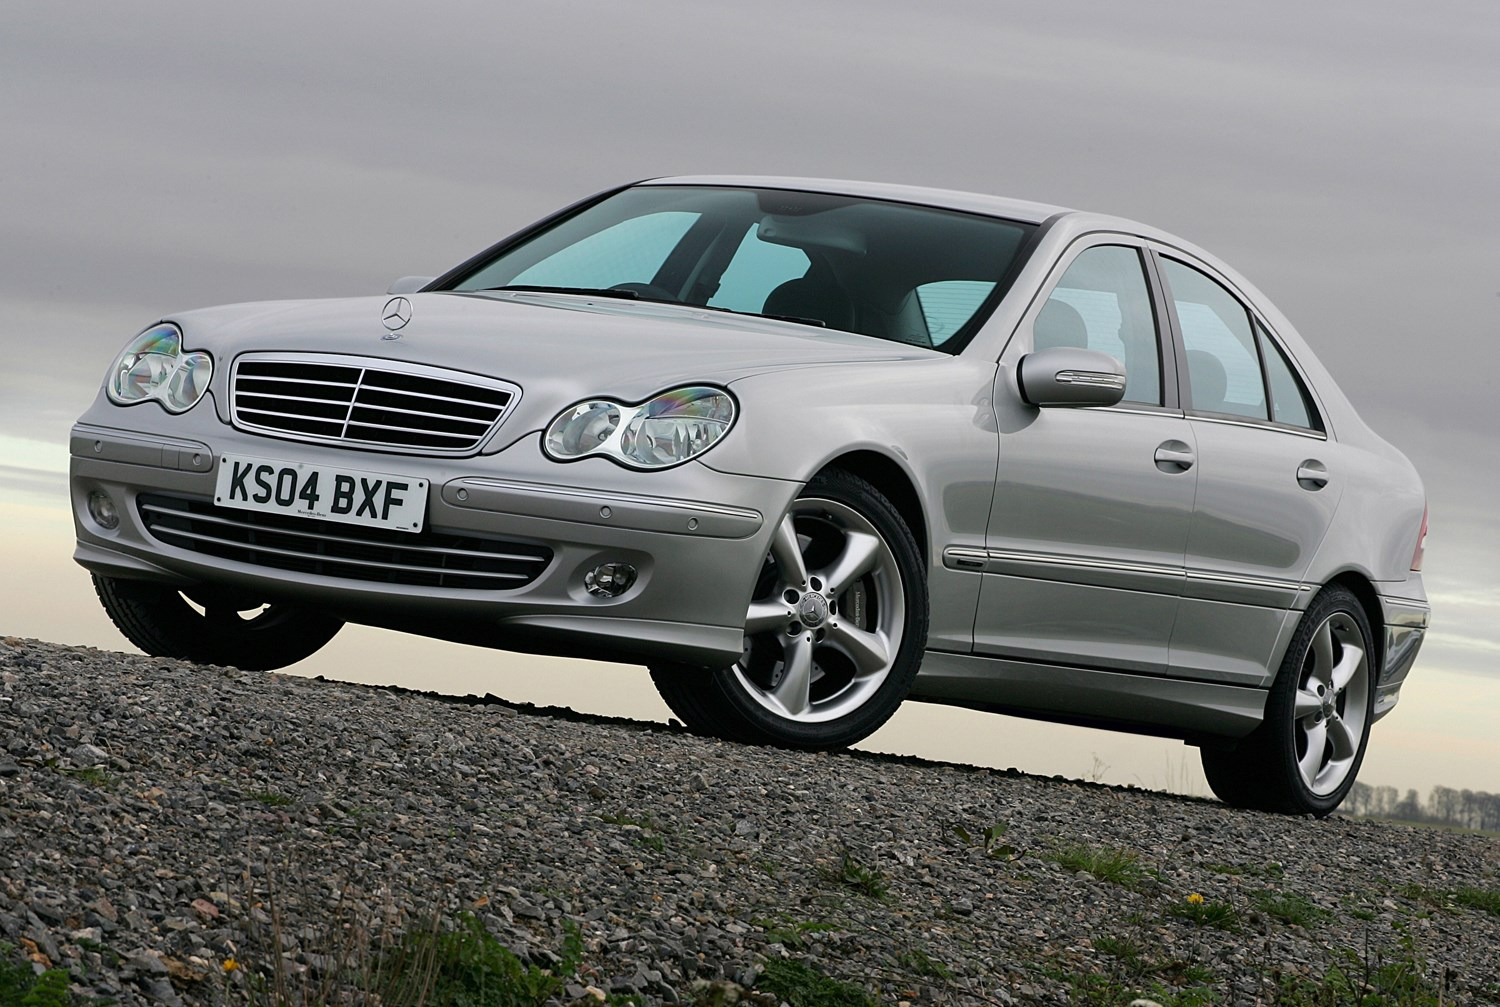 Mercedes benz c class saloon review 2000 2007 parkers for Mercedes benz c class pictures